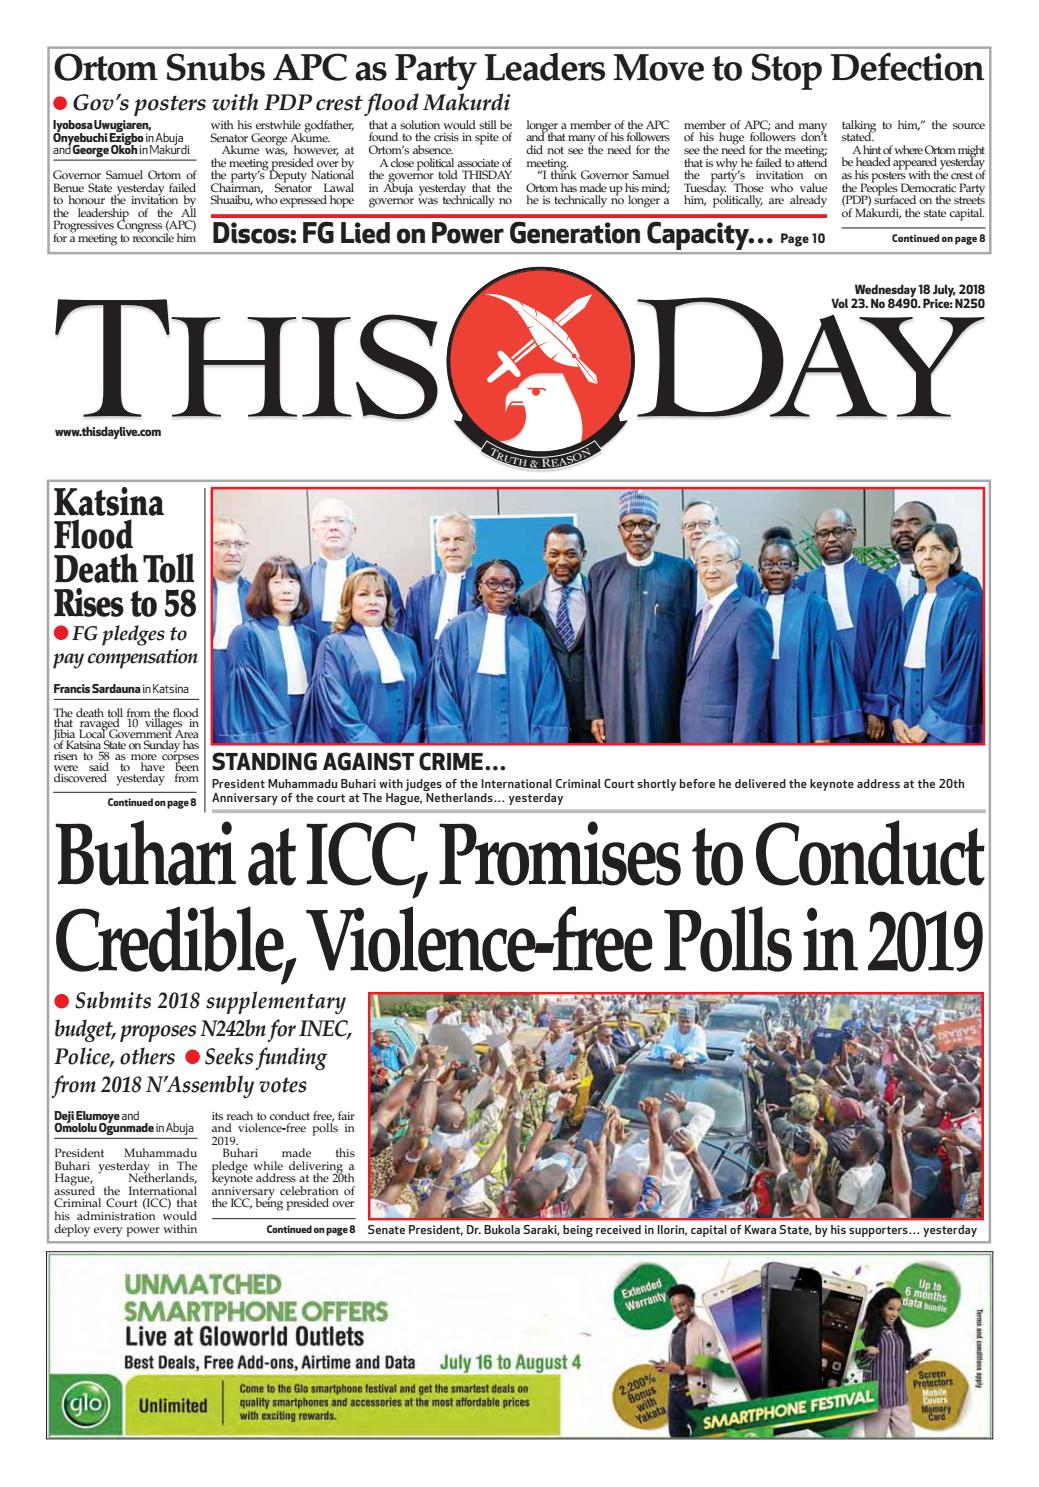 Wednesday 18th July 2018 by THISDAY Newspapers Ltd - issuu